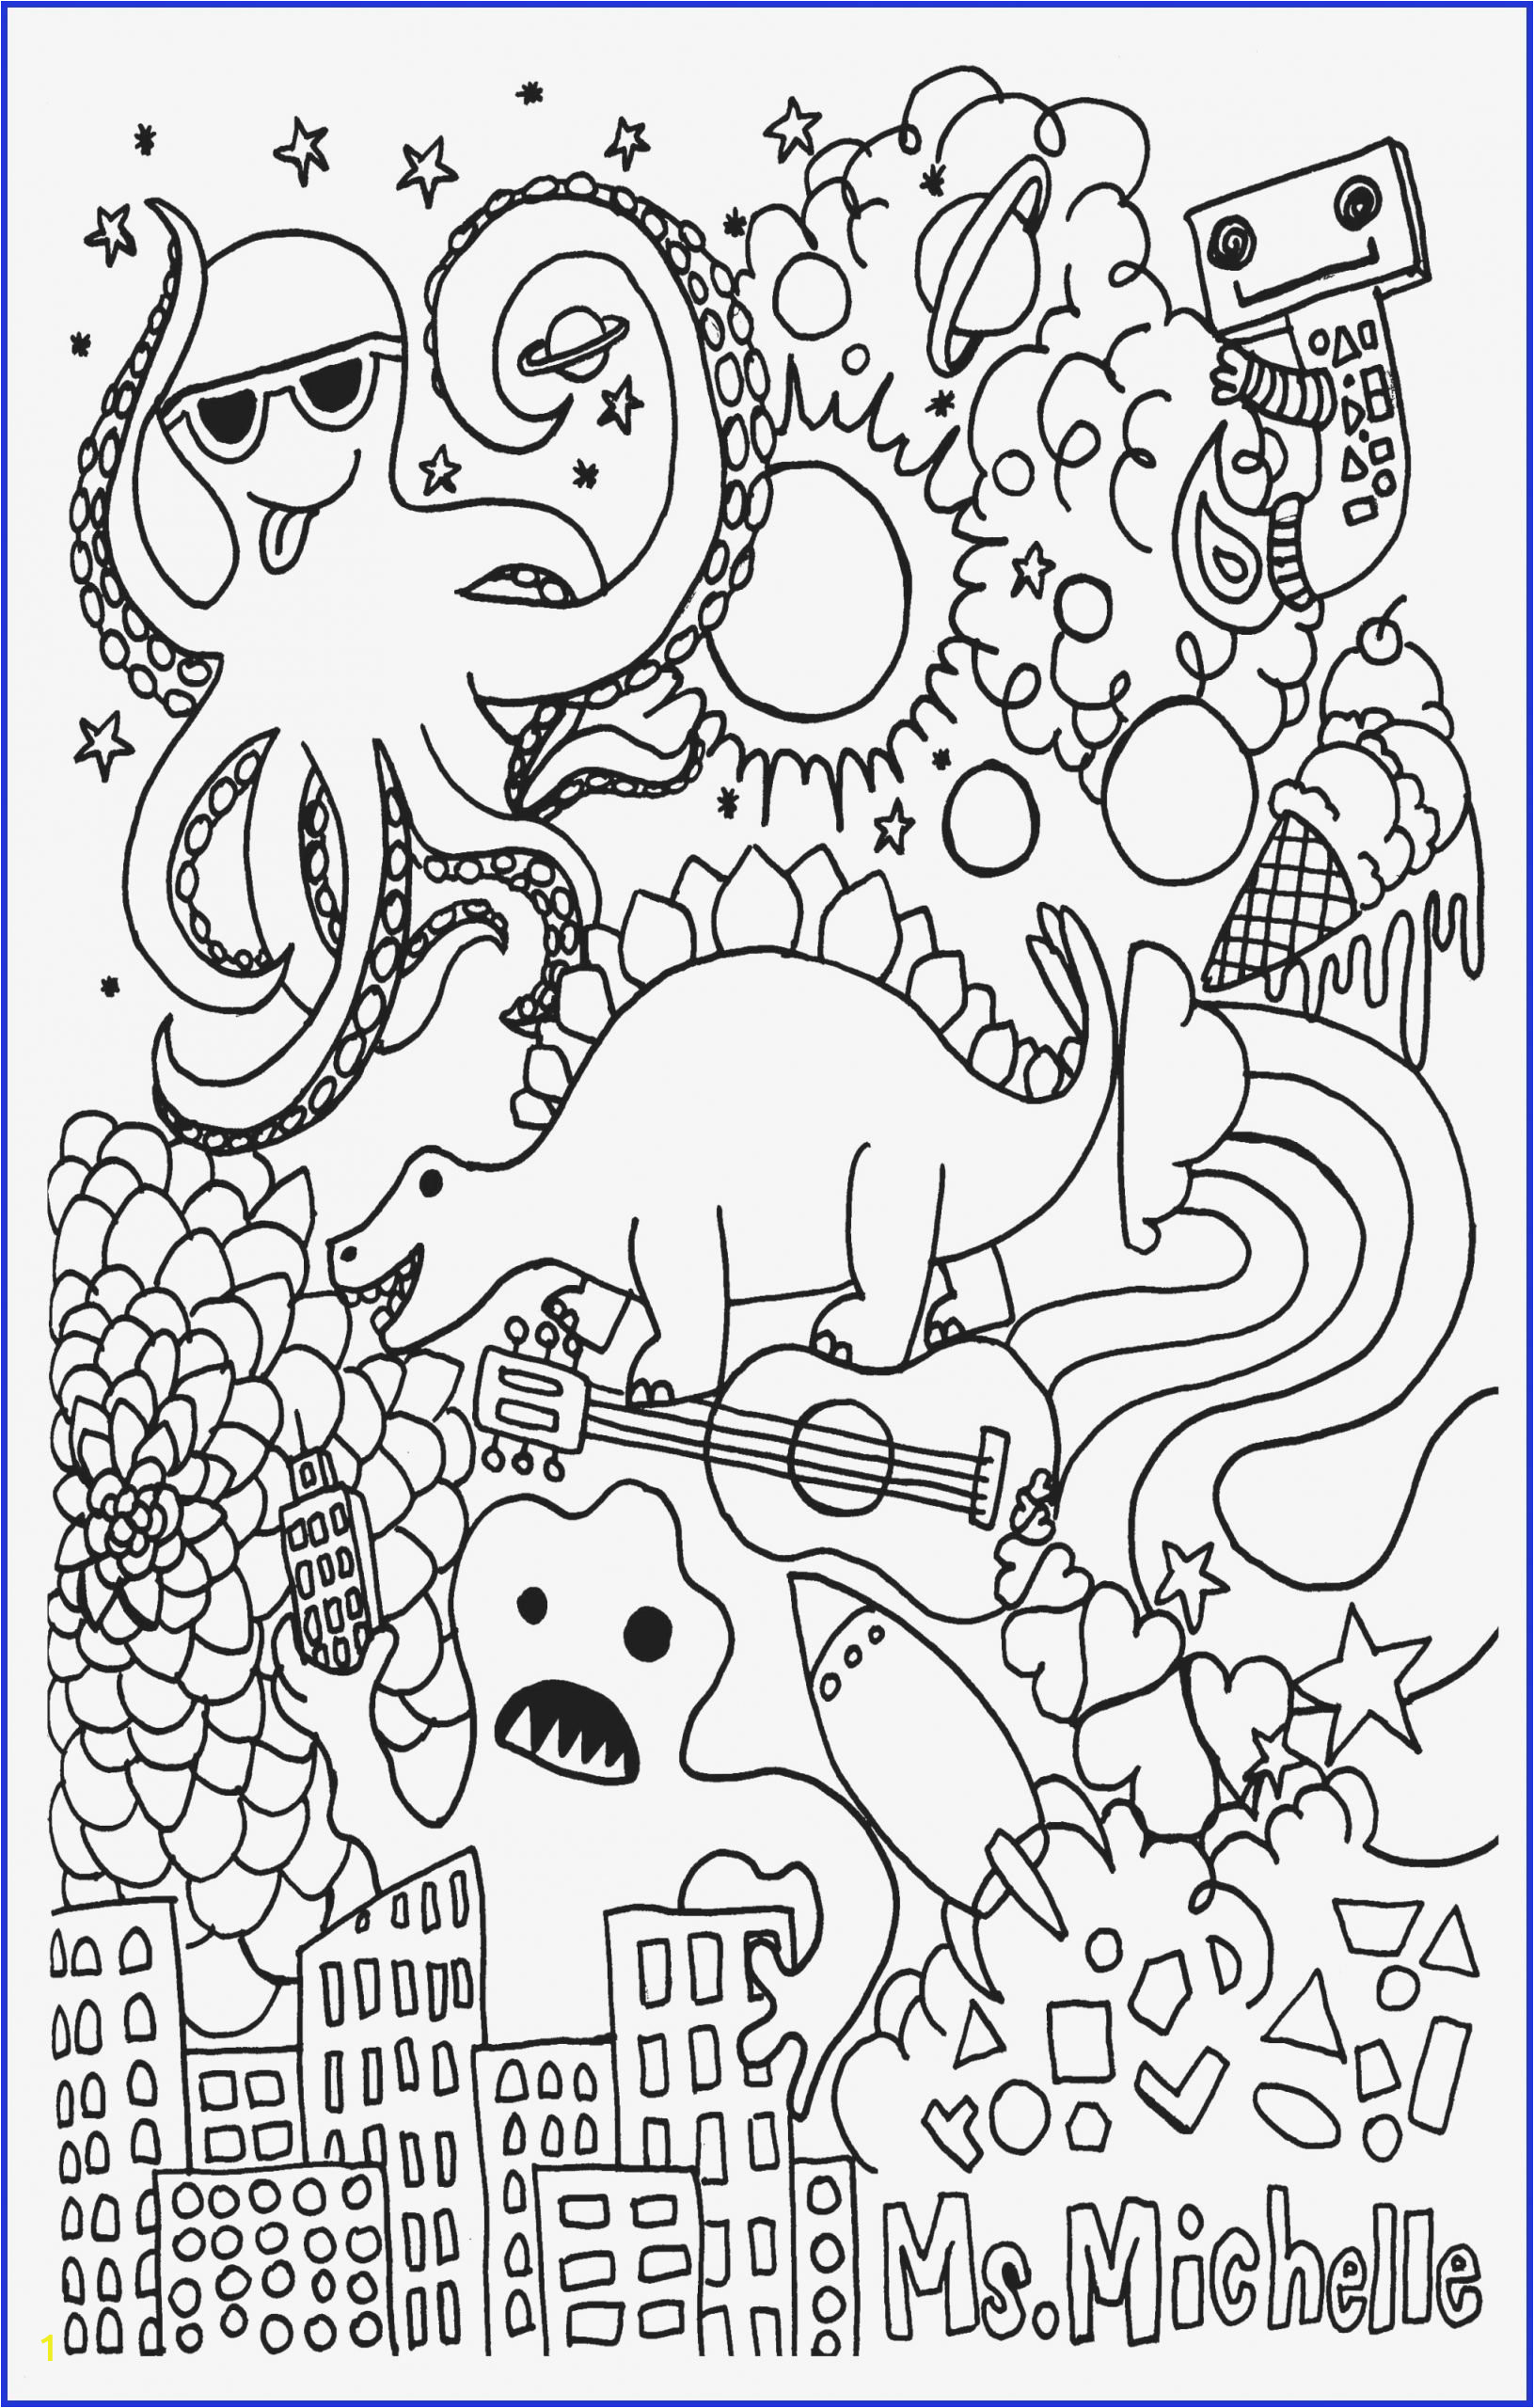 disney christmas coloring page best of coloring pages valentines day coloring pages hungry of disney christmas coloring page